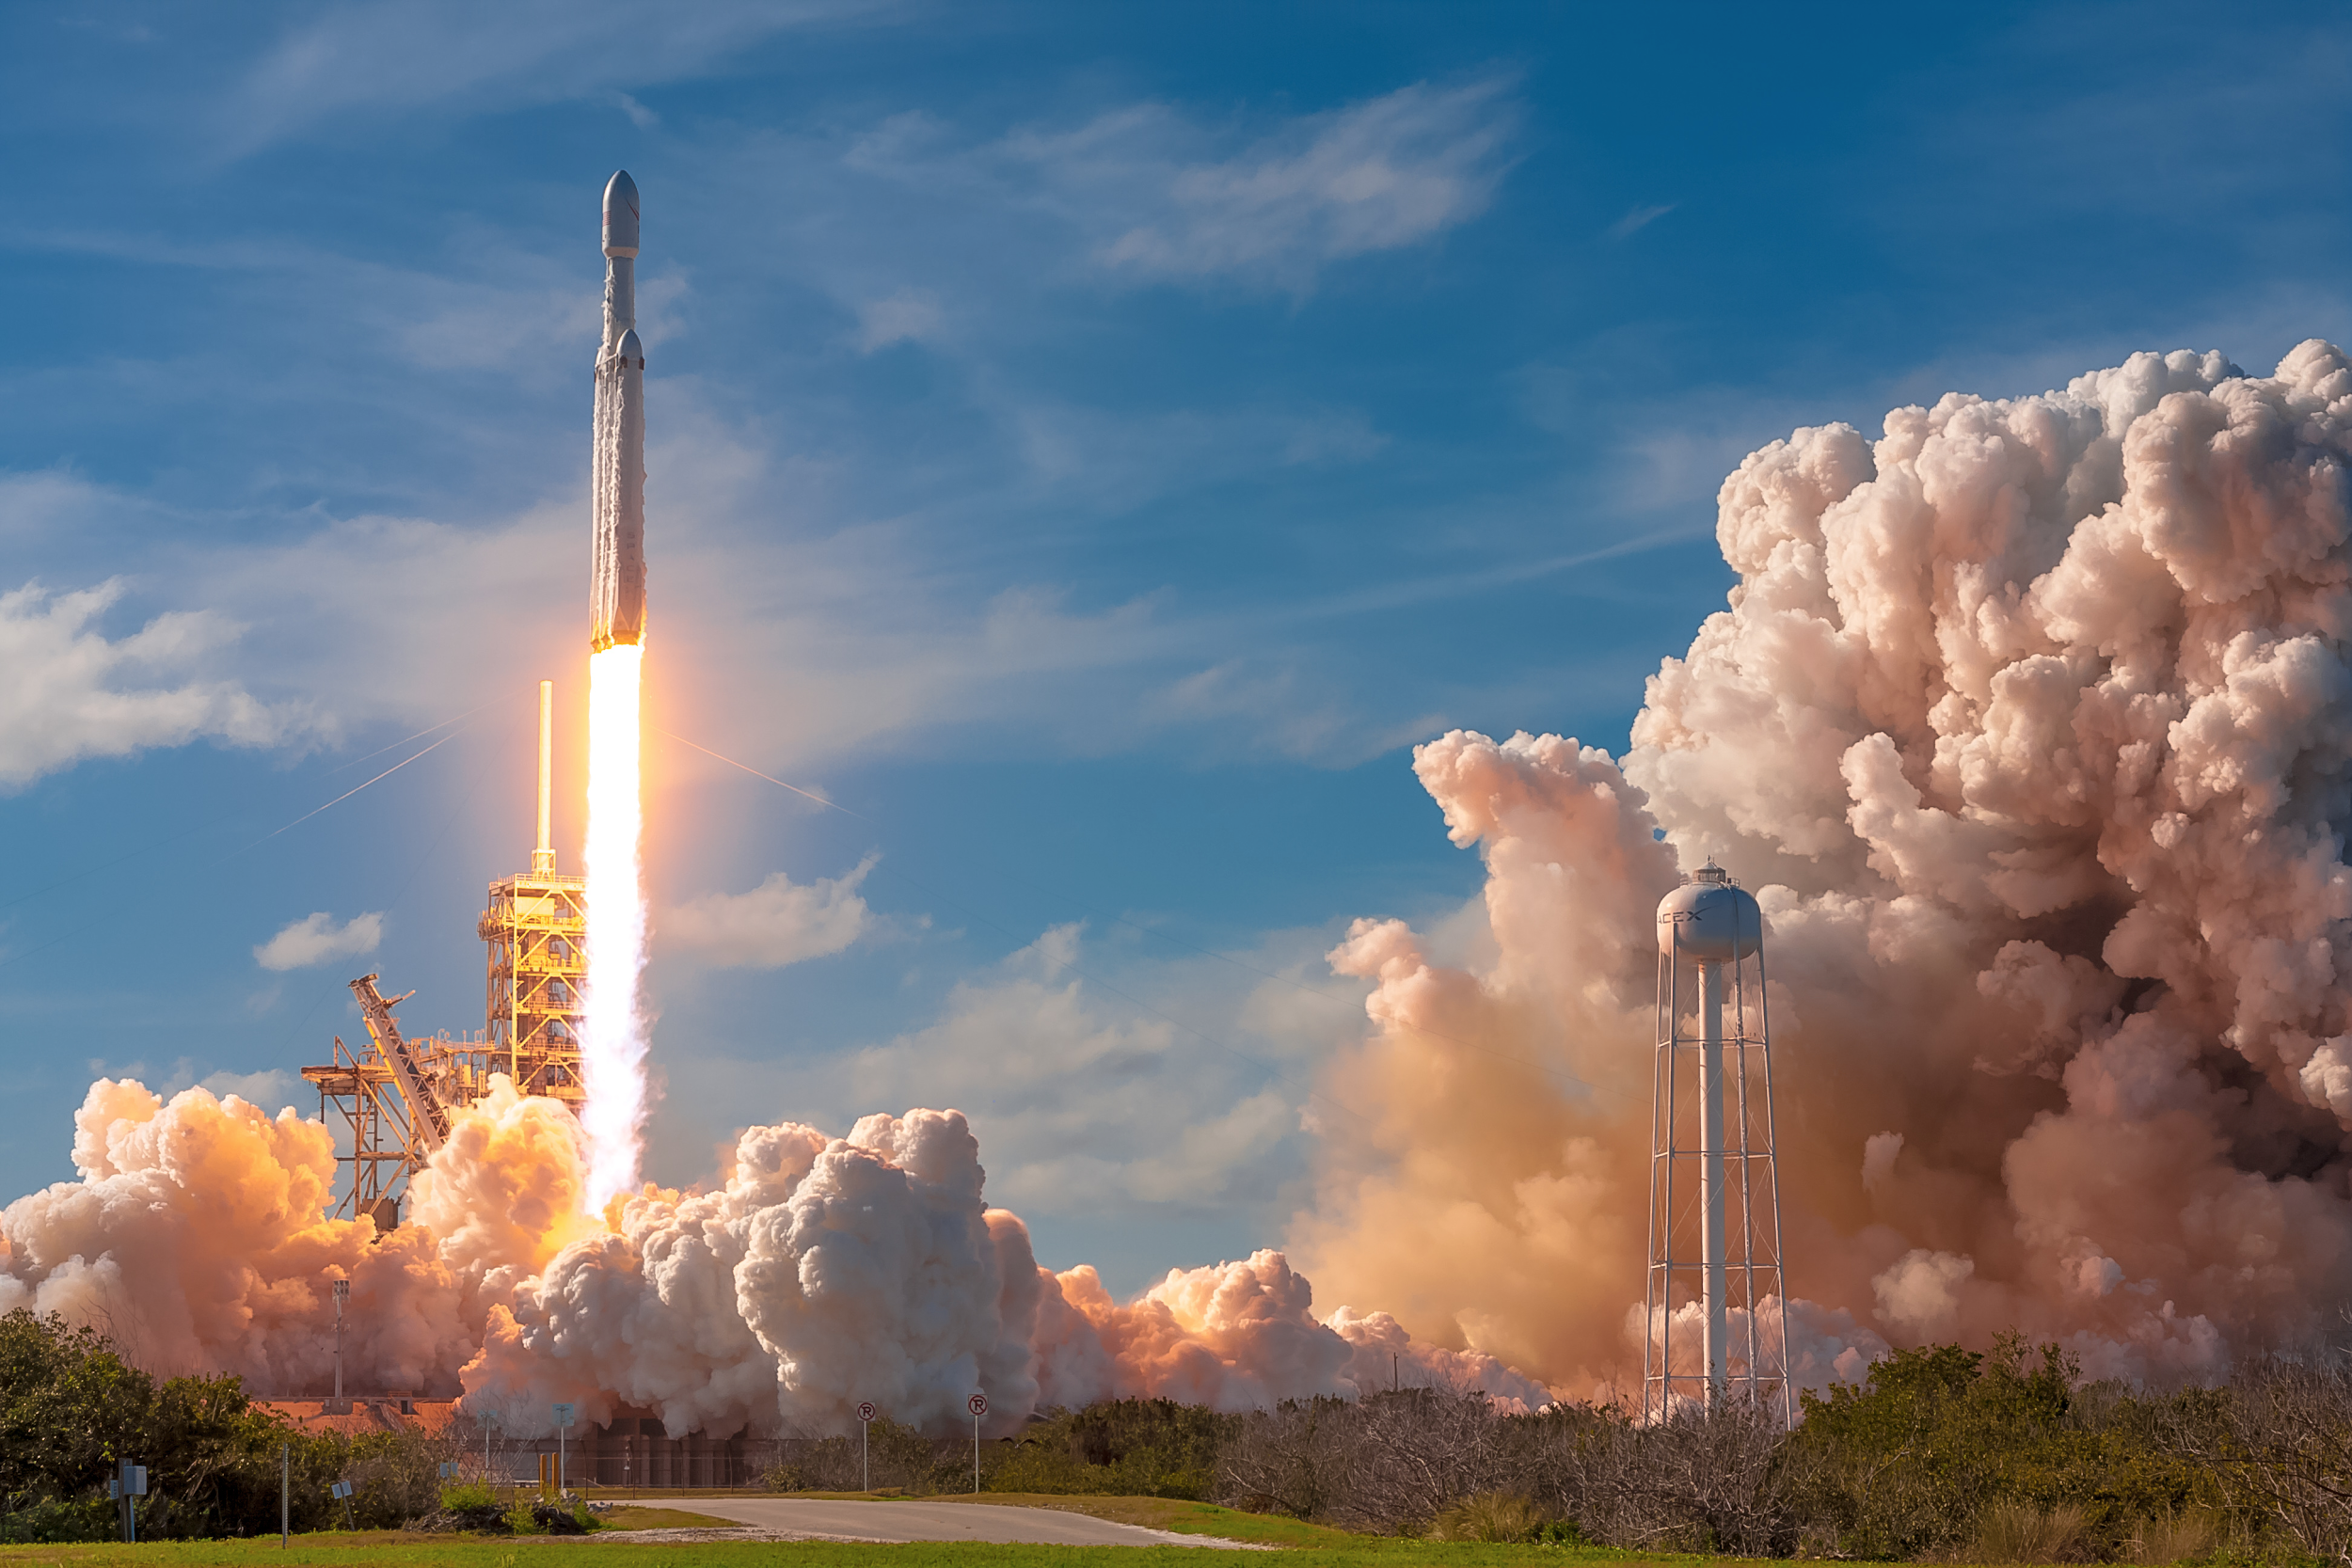 Behind the lens at SpaceX's historic Falcon Heavy launch